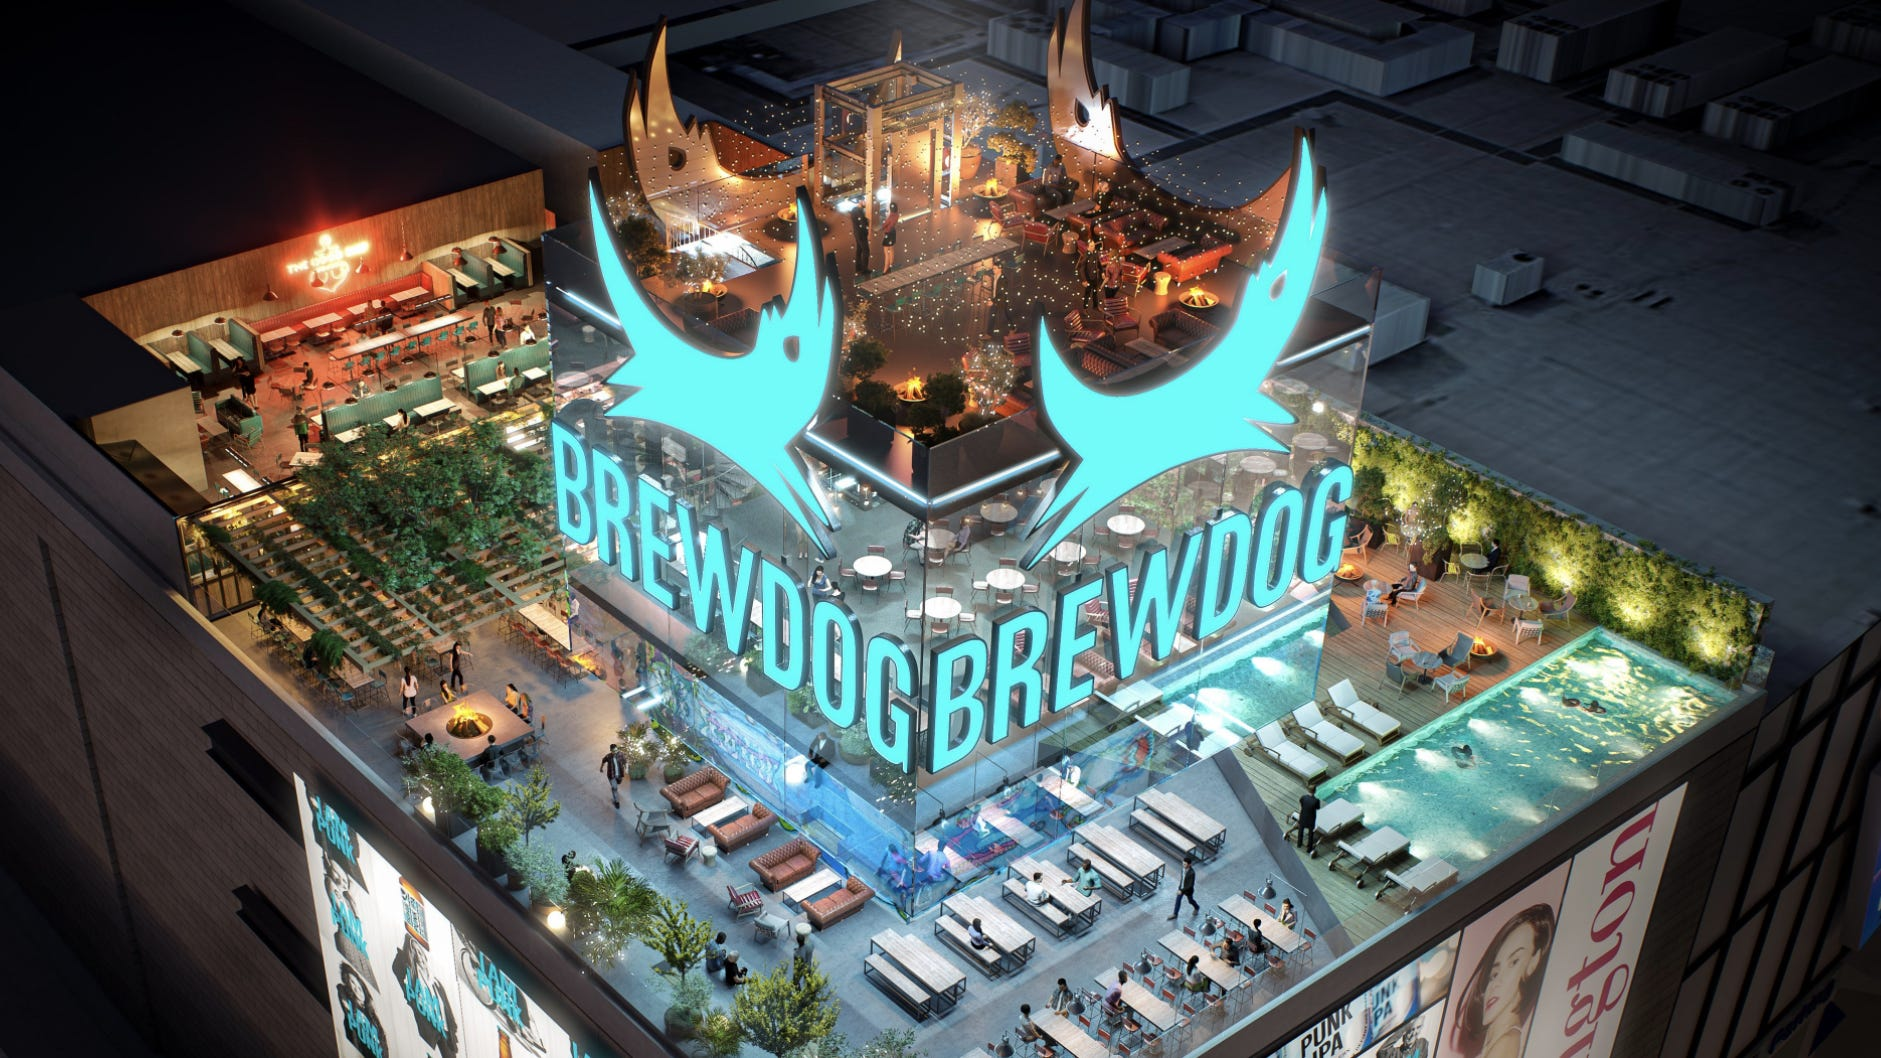 A Brew With A View: Brewdog Signs Lease For A Rooftop Brewery On Las Vegas Strip photo